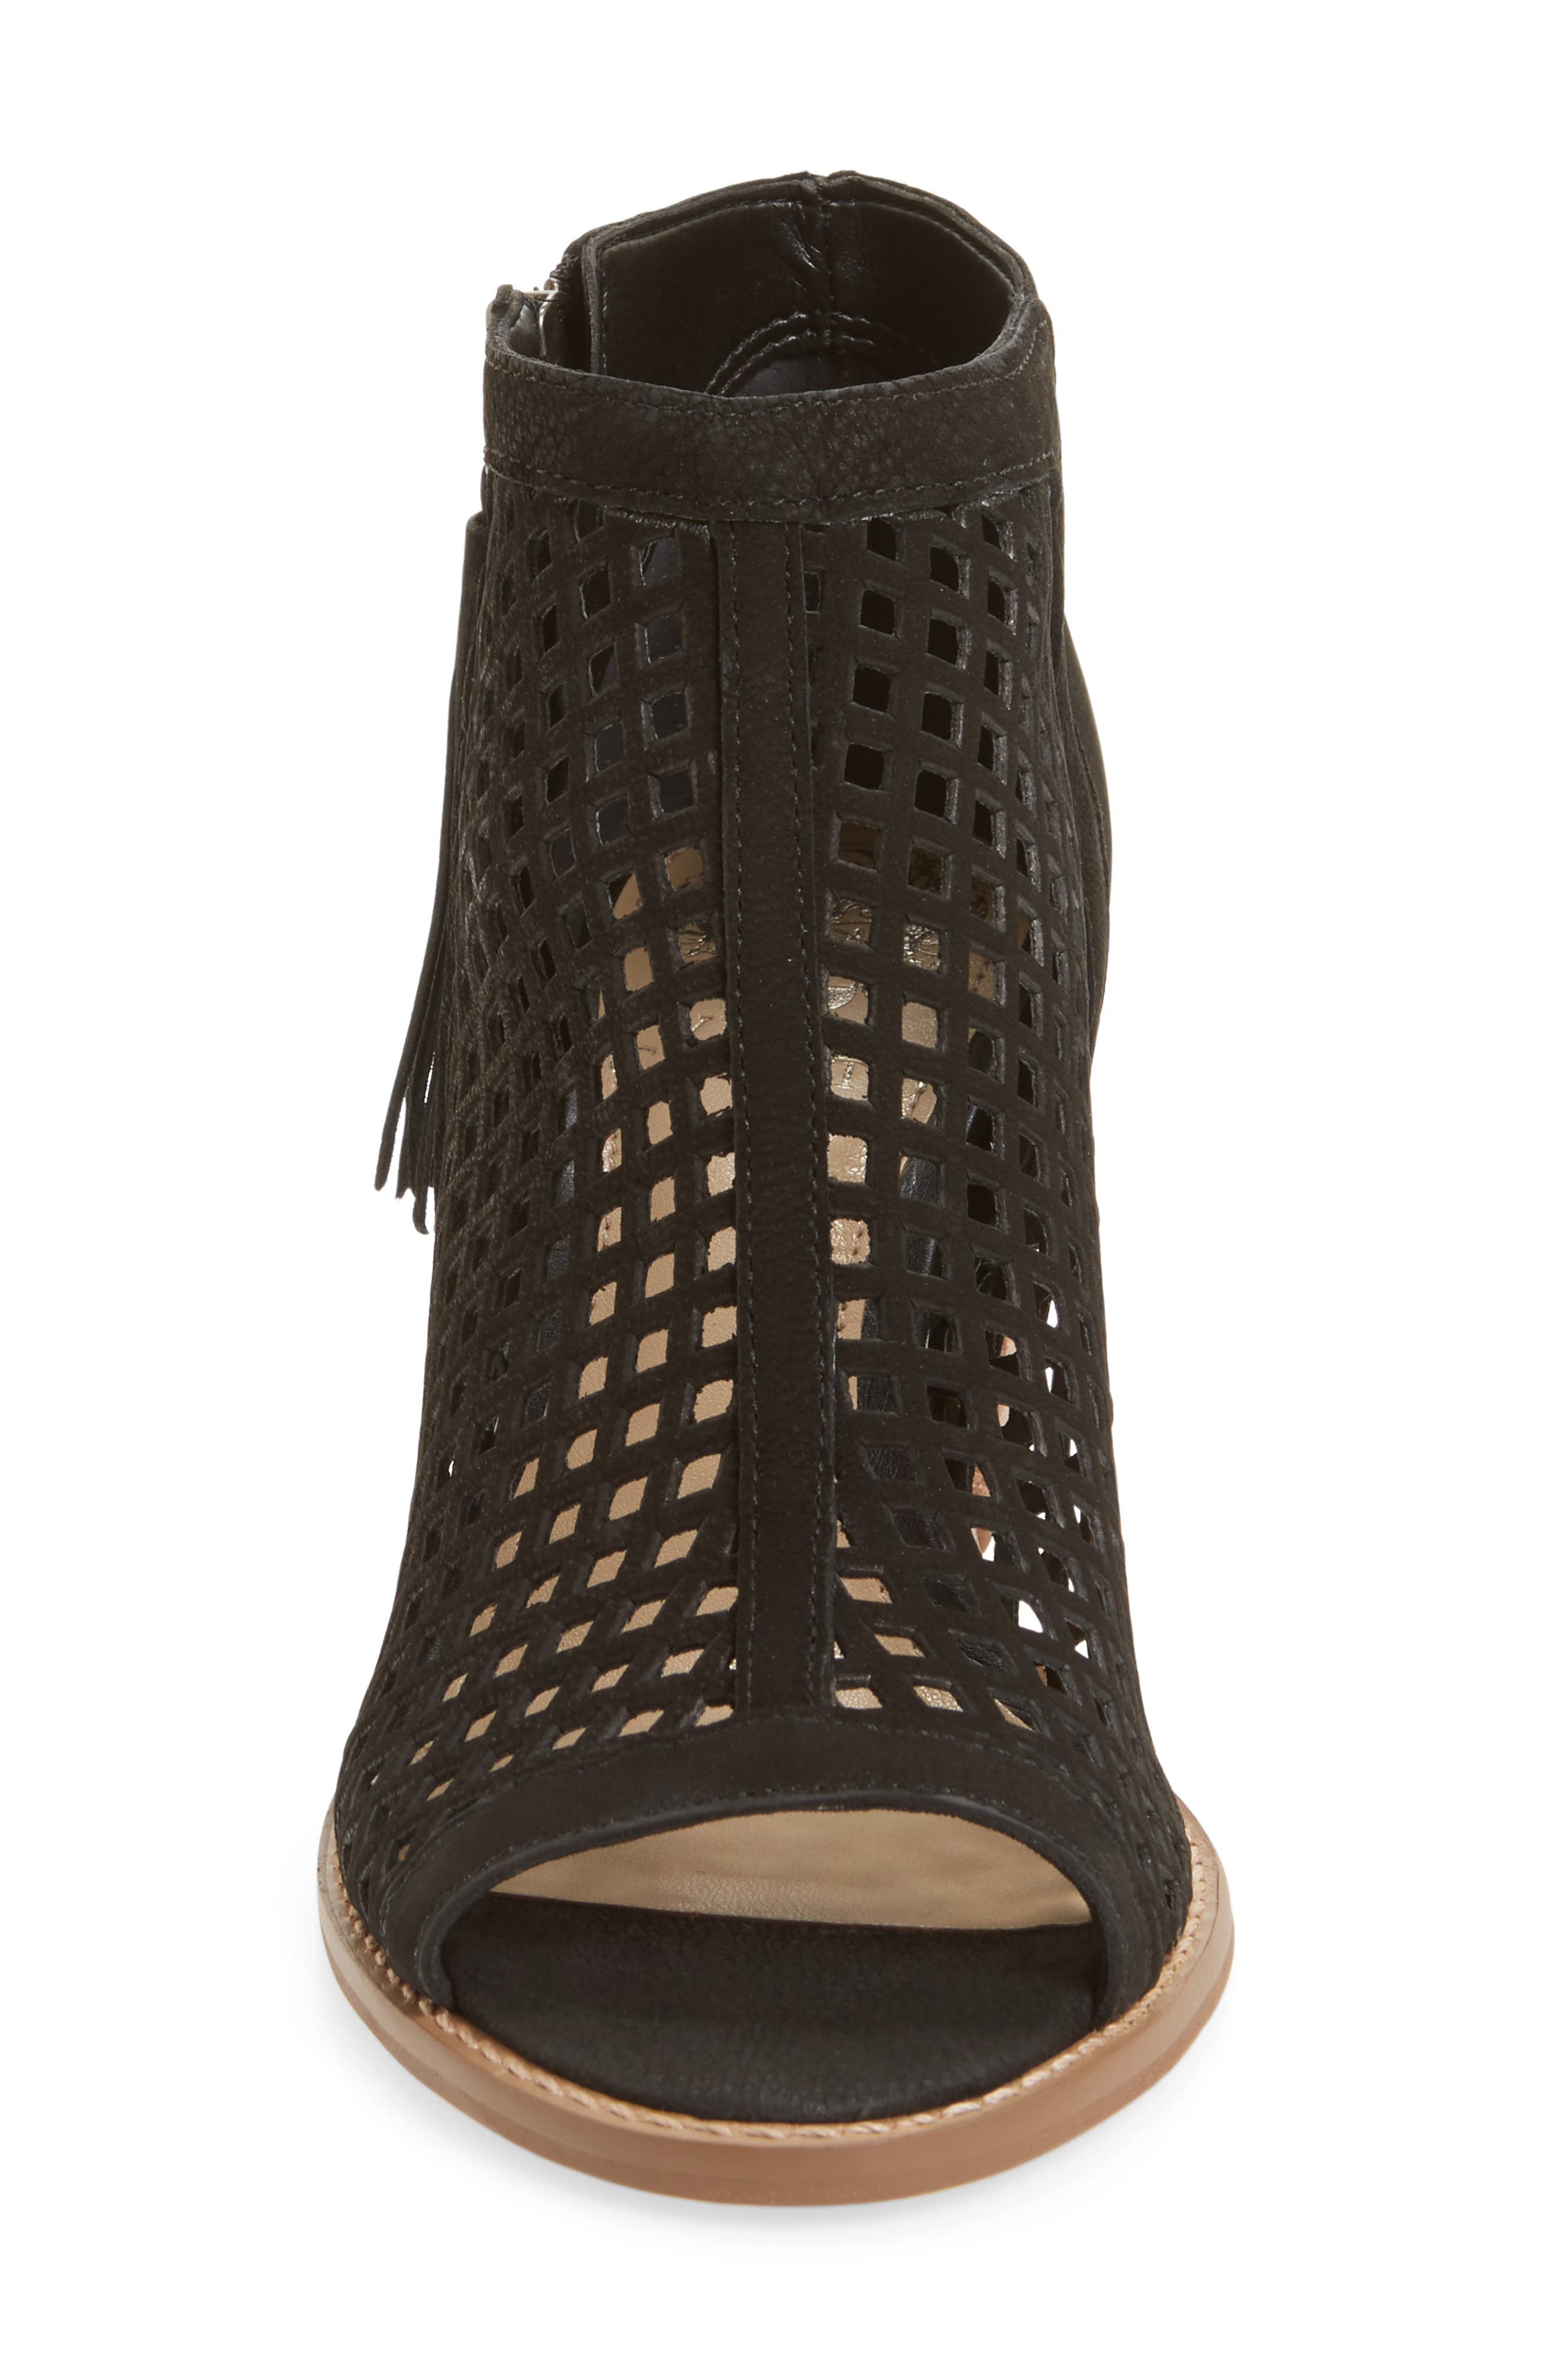 Tresin Perforated Open-Toe Bootie,                             Alternate thumbnail 3, color,                             001